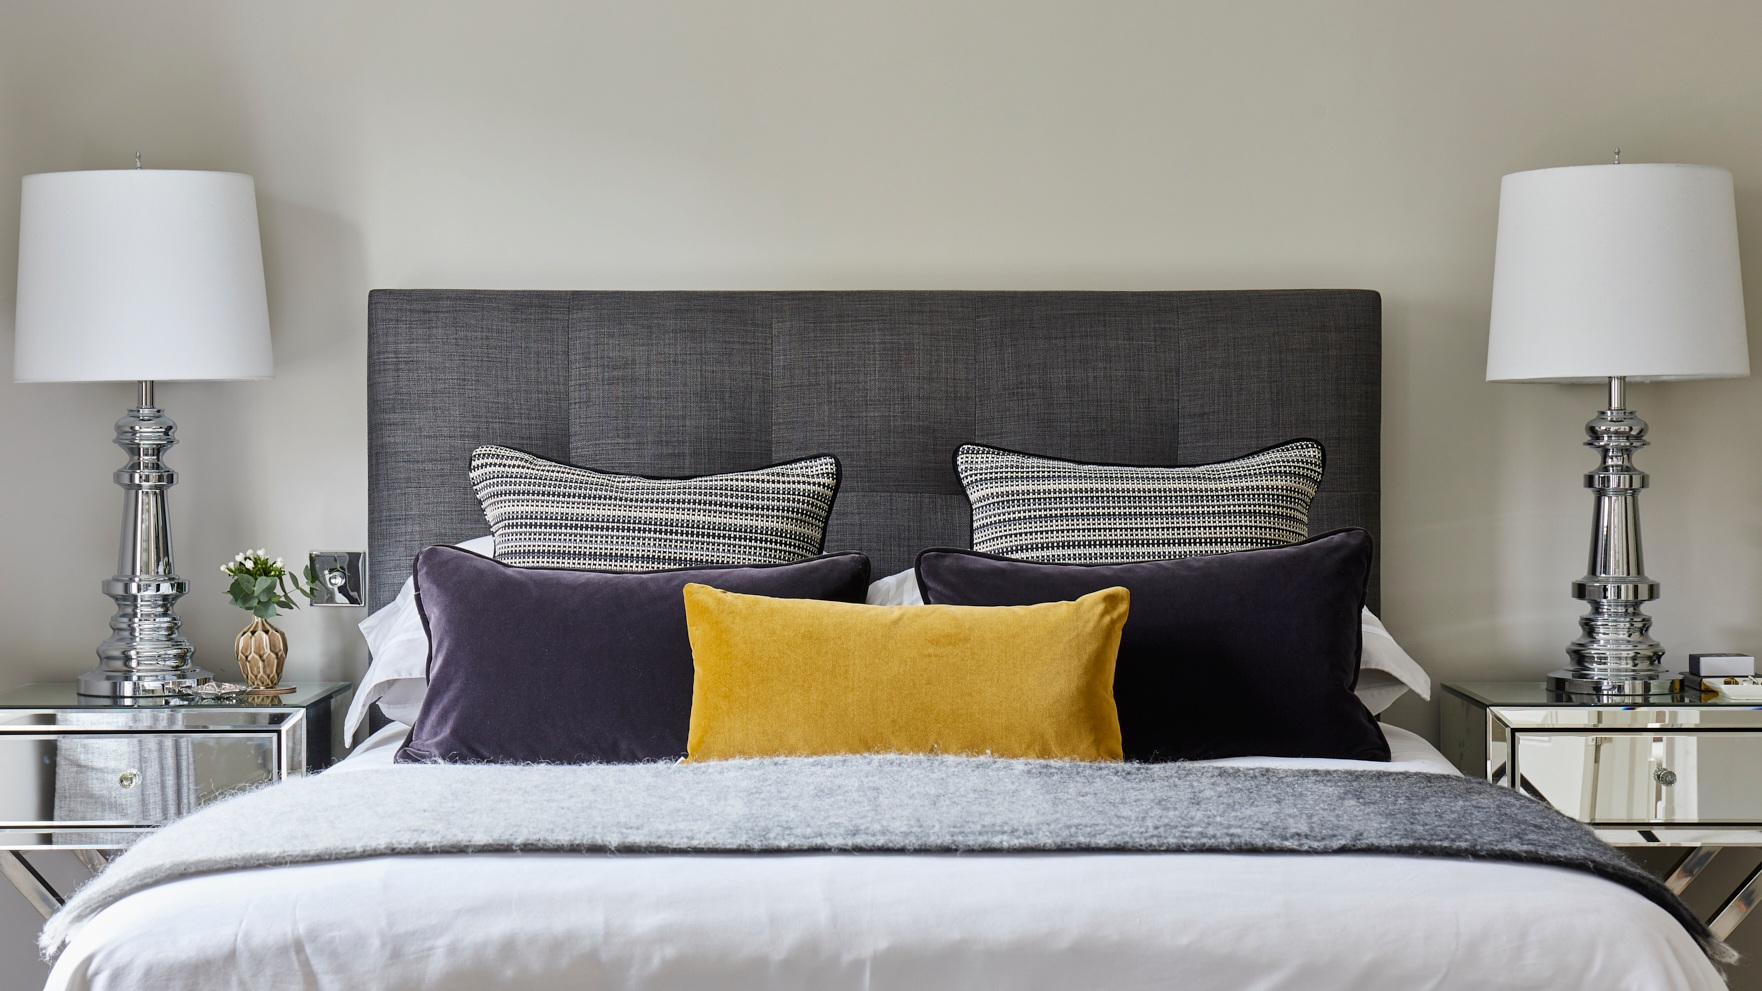 Interior designer Sonia Adams designed this master bedroom with a bespoke headboard and luxury velvet cushions